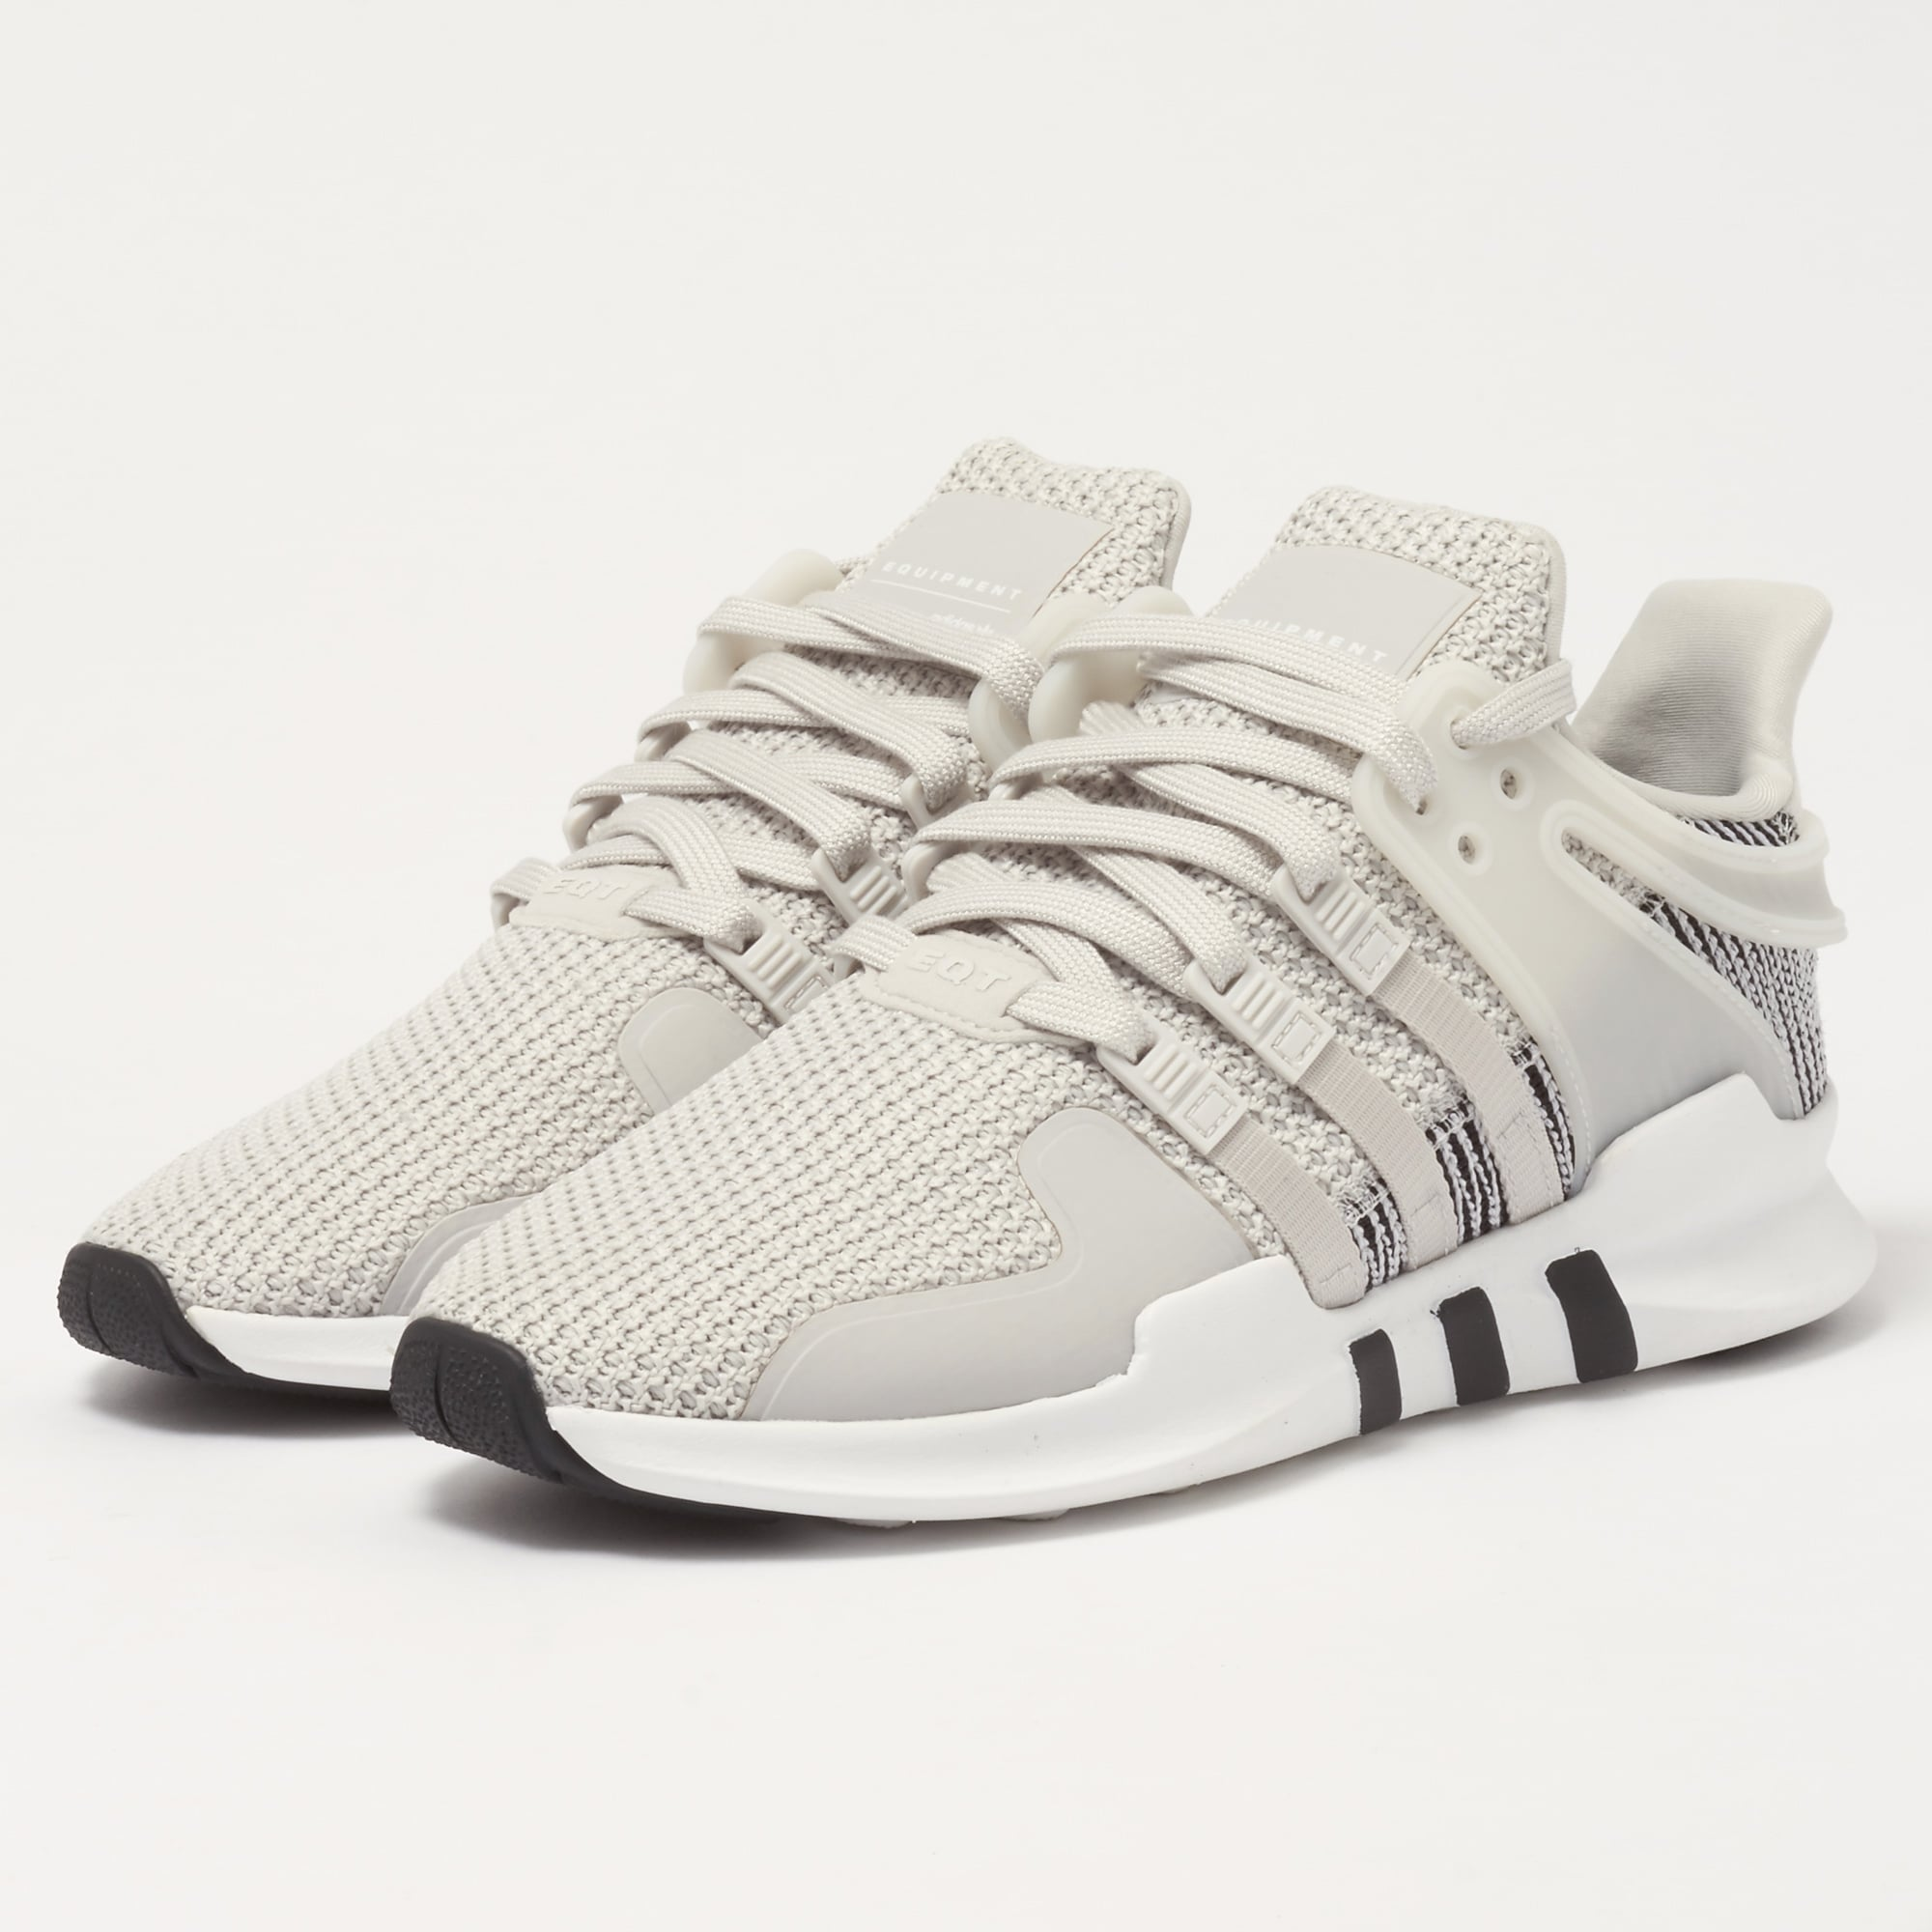 eqt support adv shoes grey